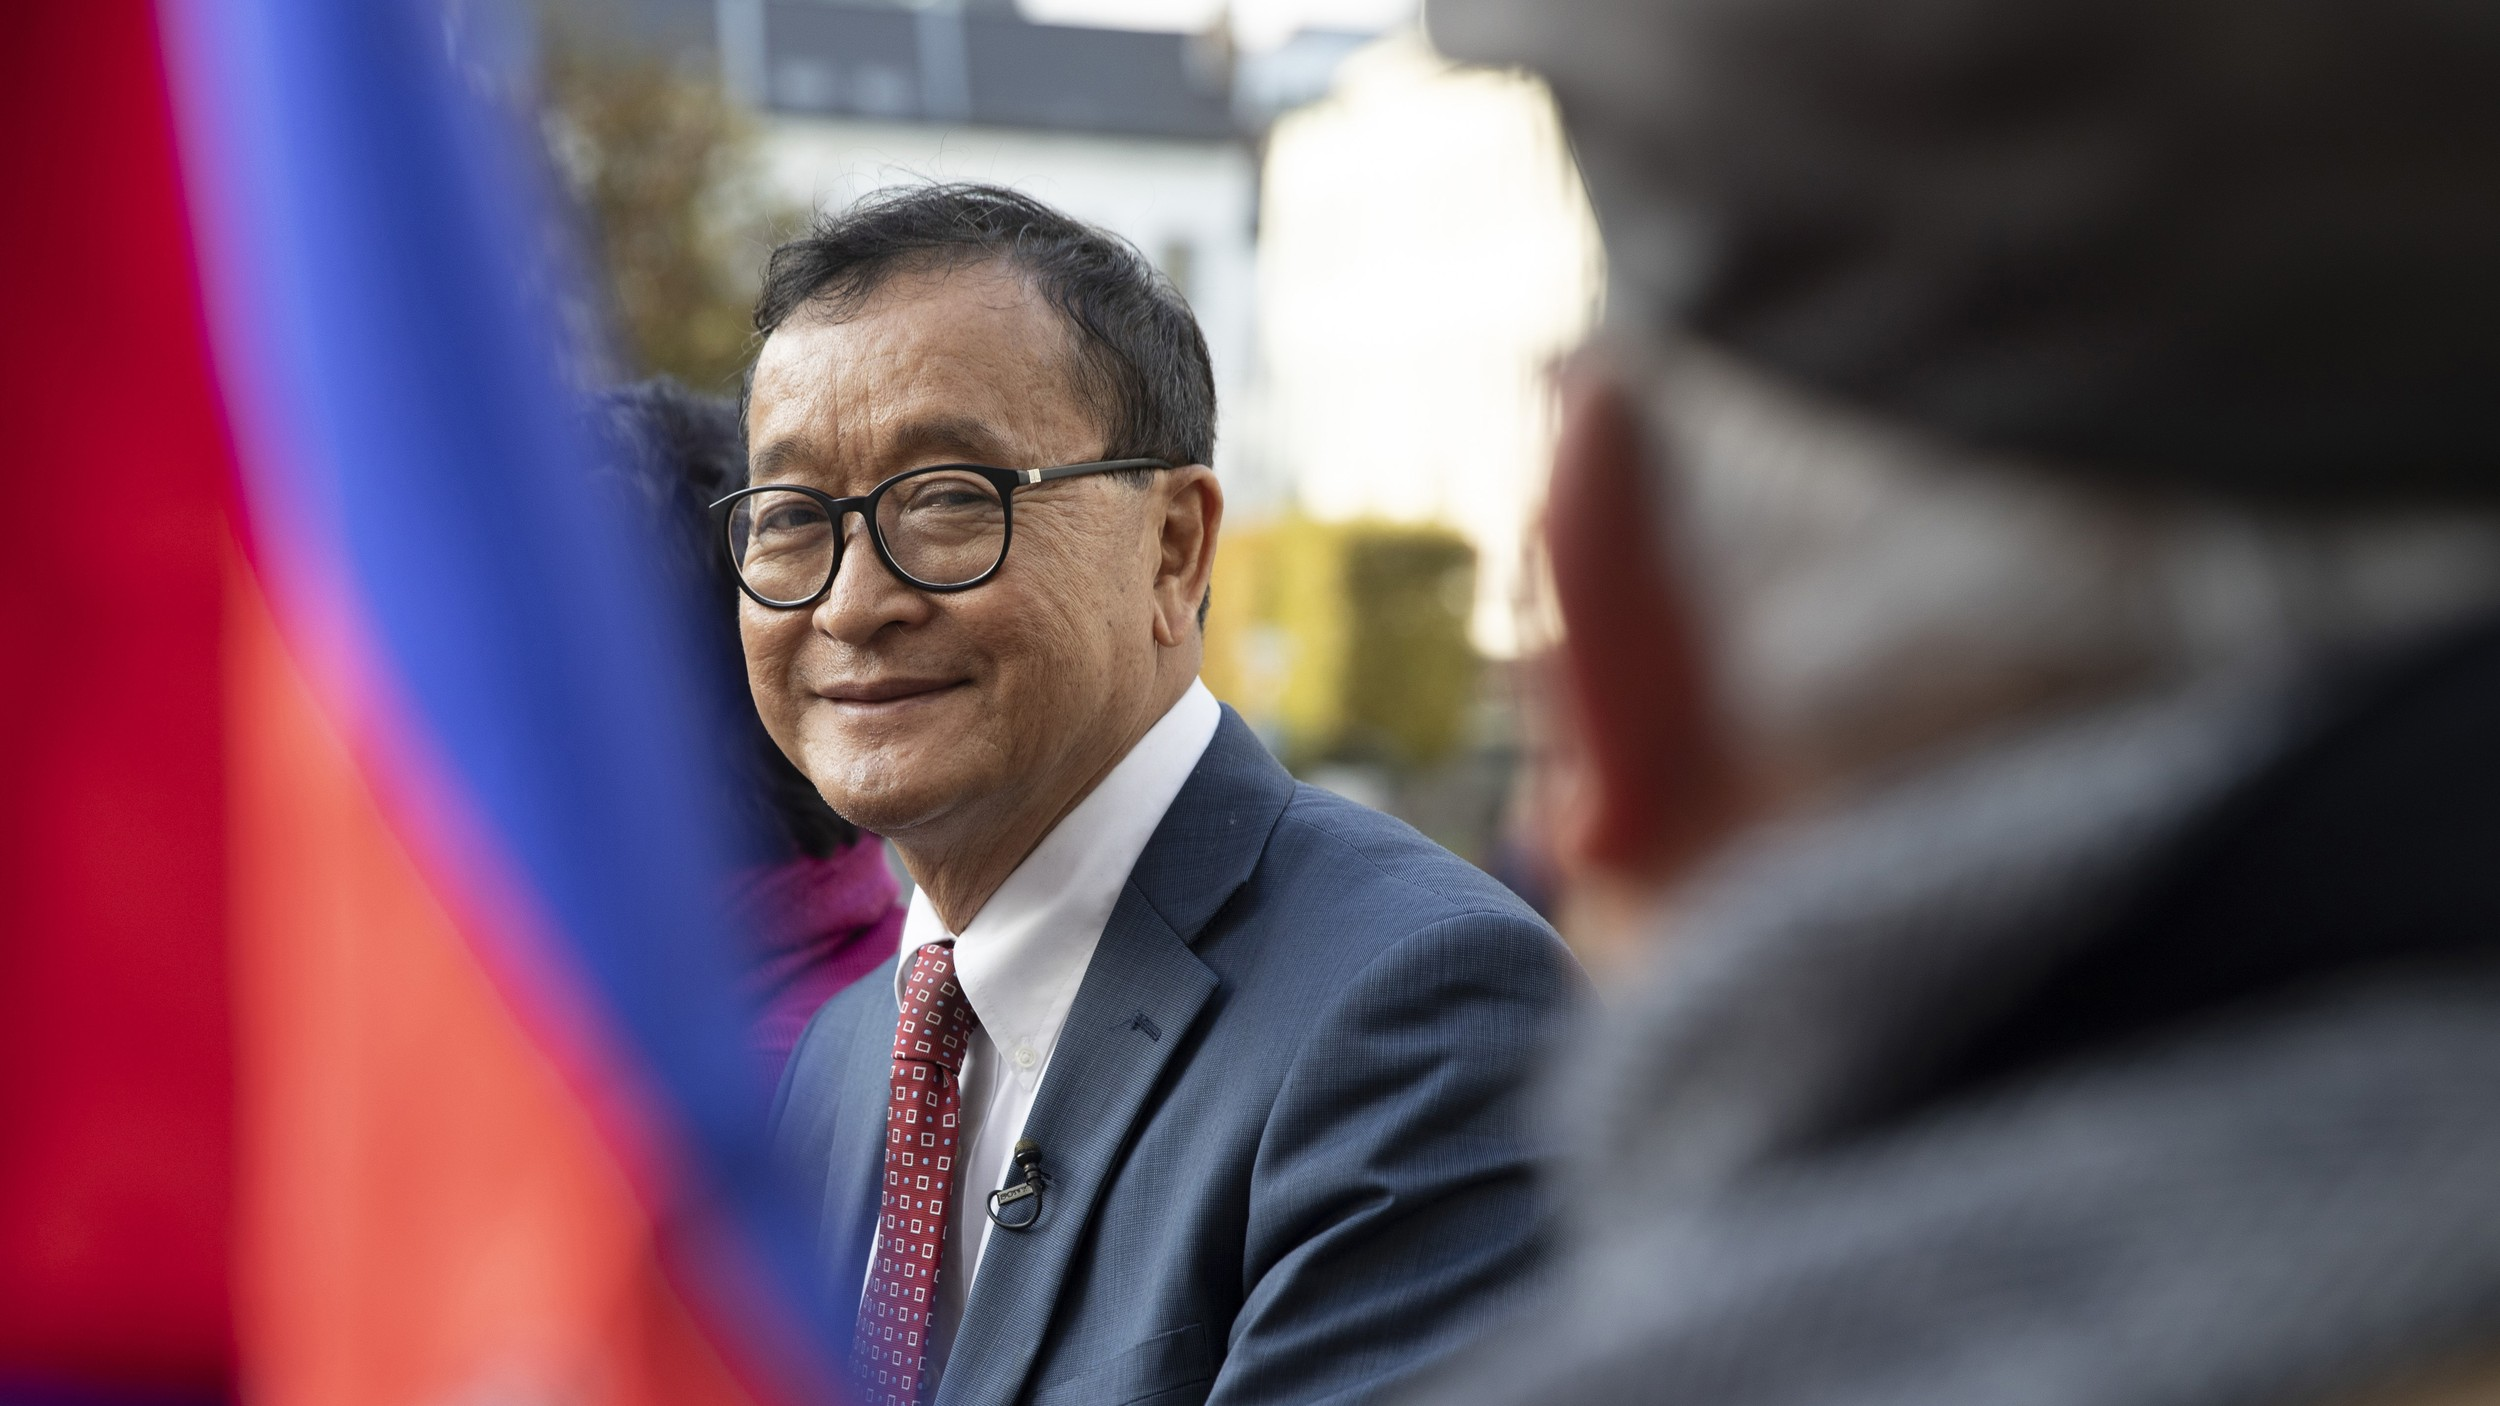 Cambodian opposition politician Sam Rainsy (C) speaks to a member of his delegation as he sits in front of the European Parliament in Brussels, Belgium, Nov. 4, 2019. Credit: AP Photo